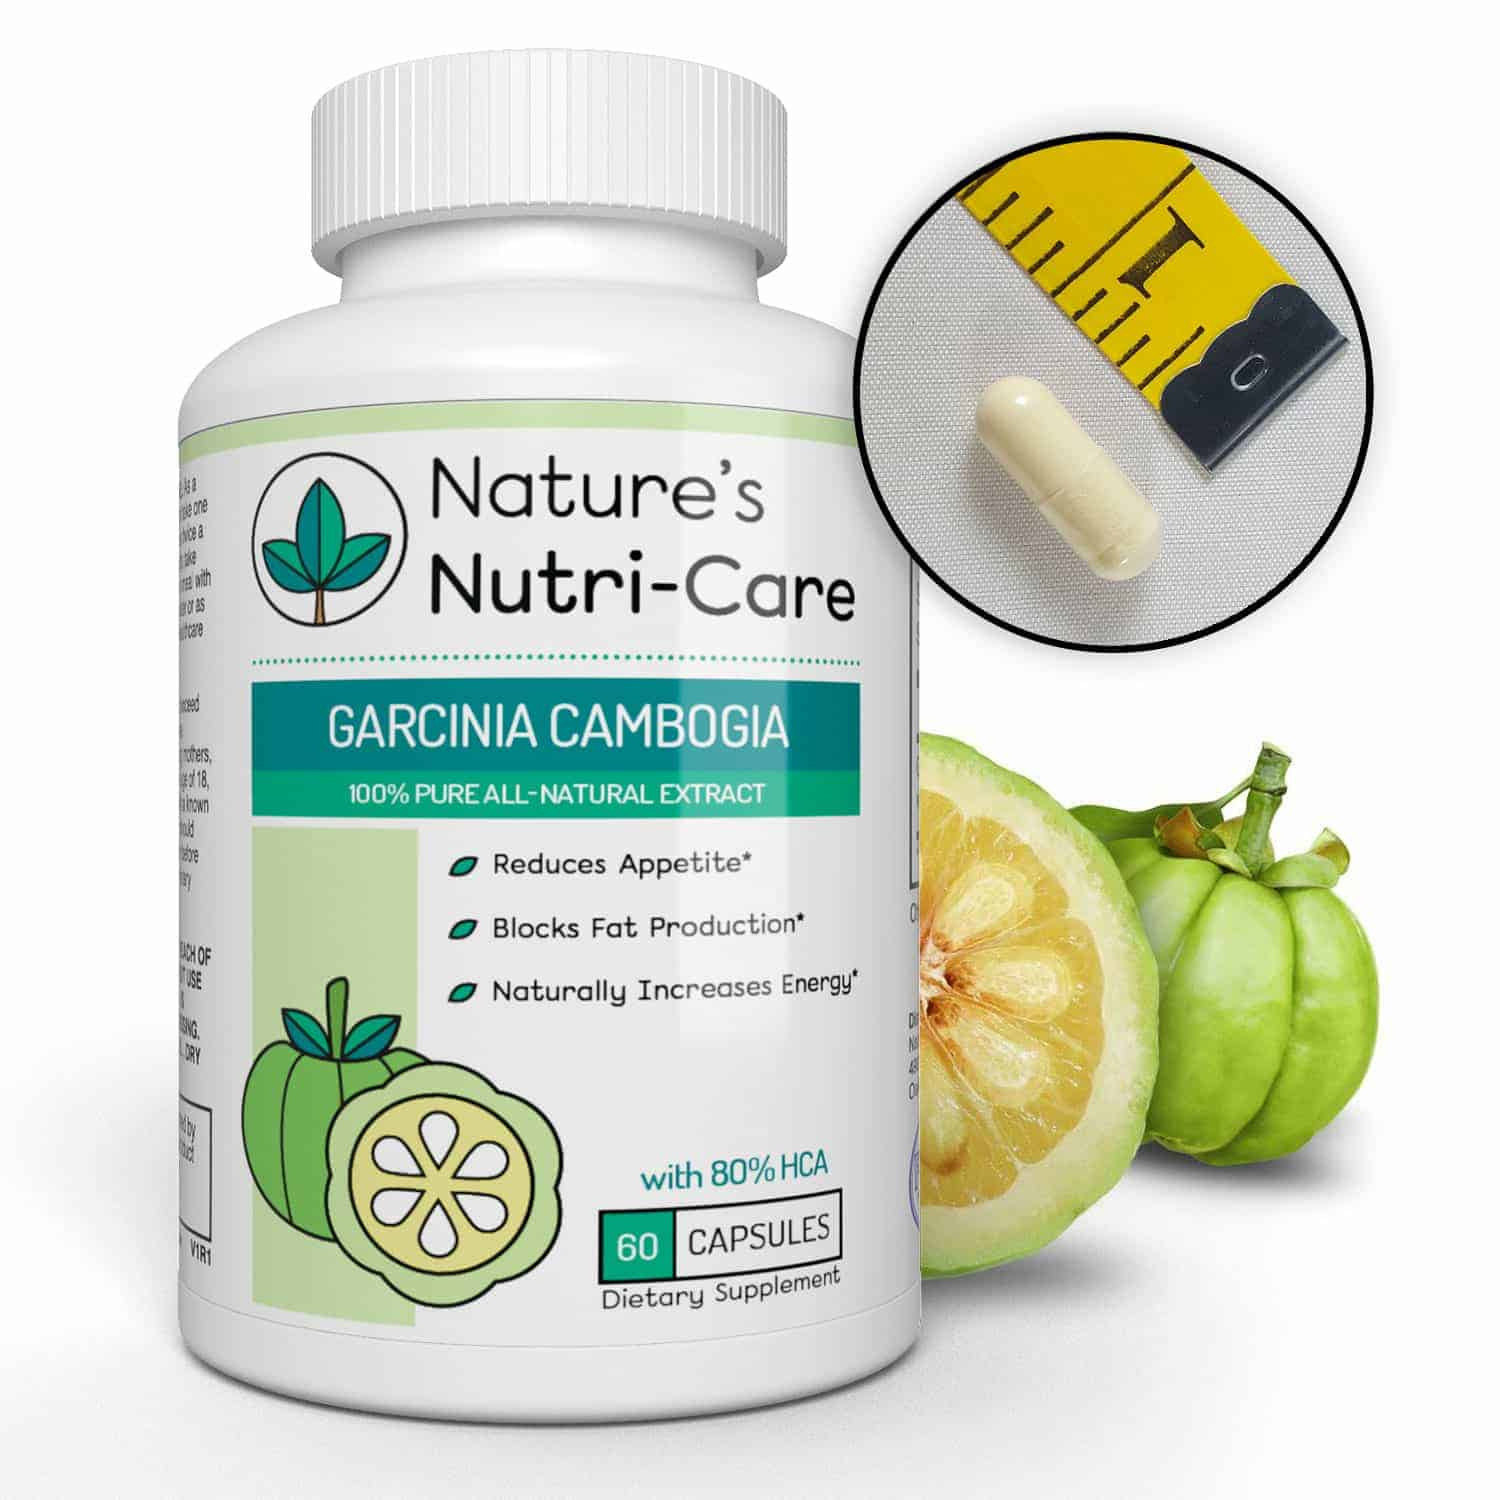 Garcinia Cambogia by Creative Bioscience is a pumpkin-shaped fruit native to Indonesia The ingredient in Garcinia's rind that helps you eat less is Hydroxycitric acid, or HCA When combined with reasonable weight loss efforts including sensible eating and staying active, researchers have found that HCA can double or triple diet results.